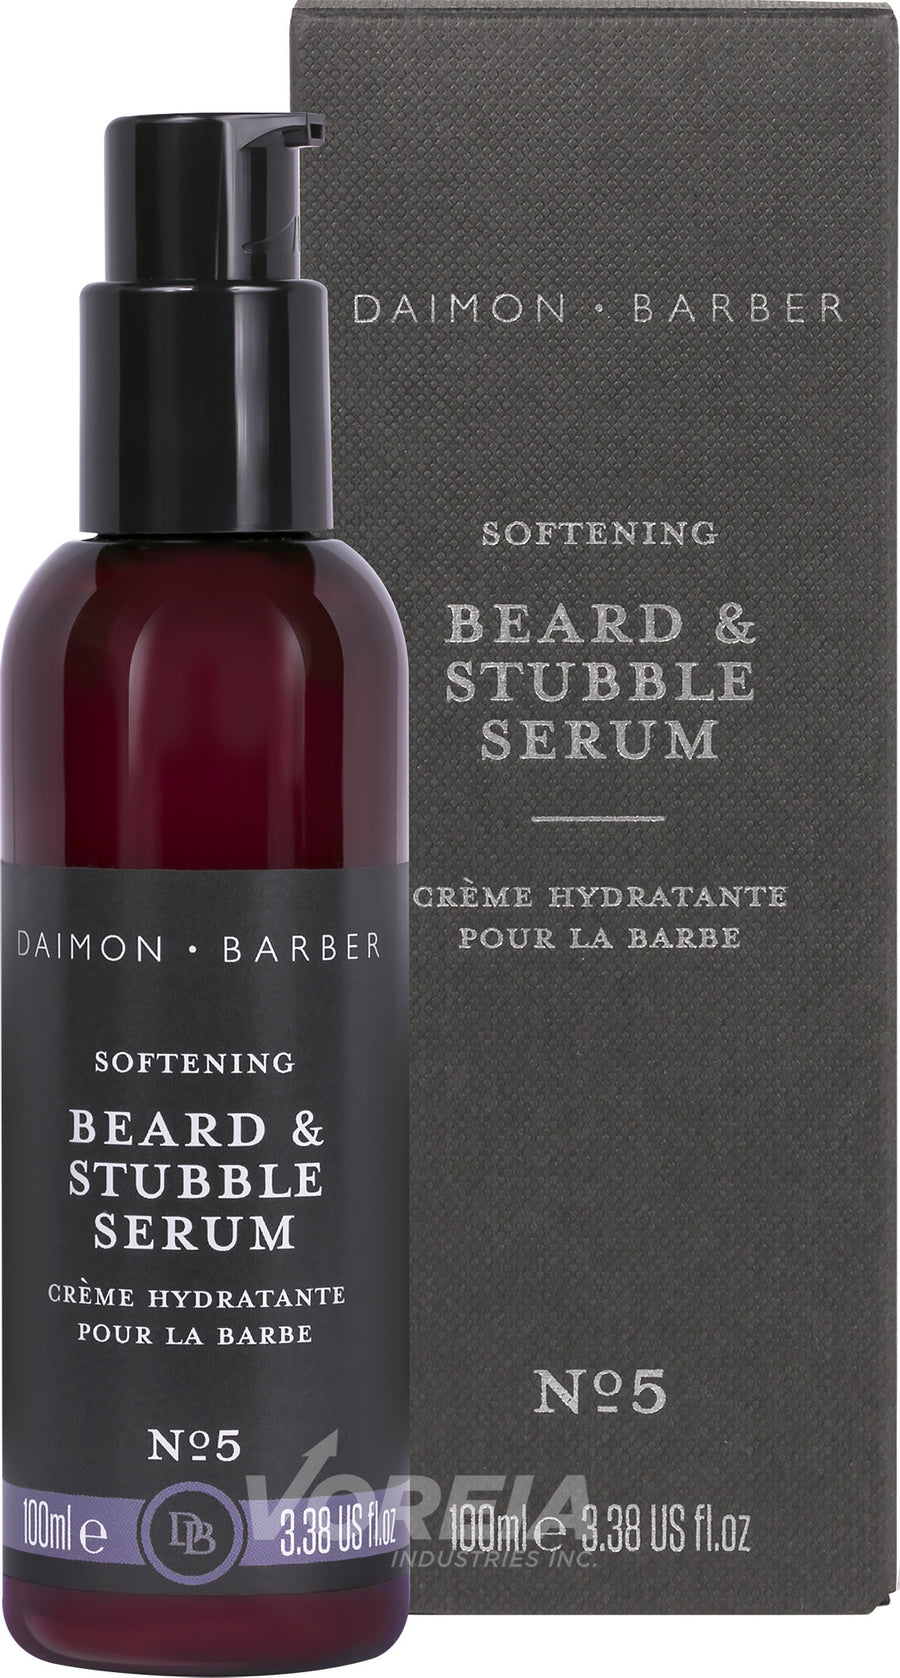 Daimon Barber Beard Serum 100ml